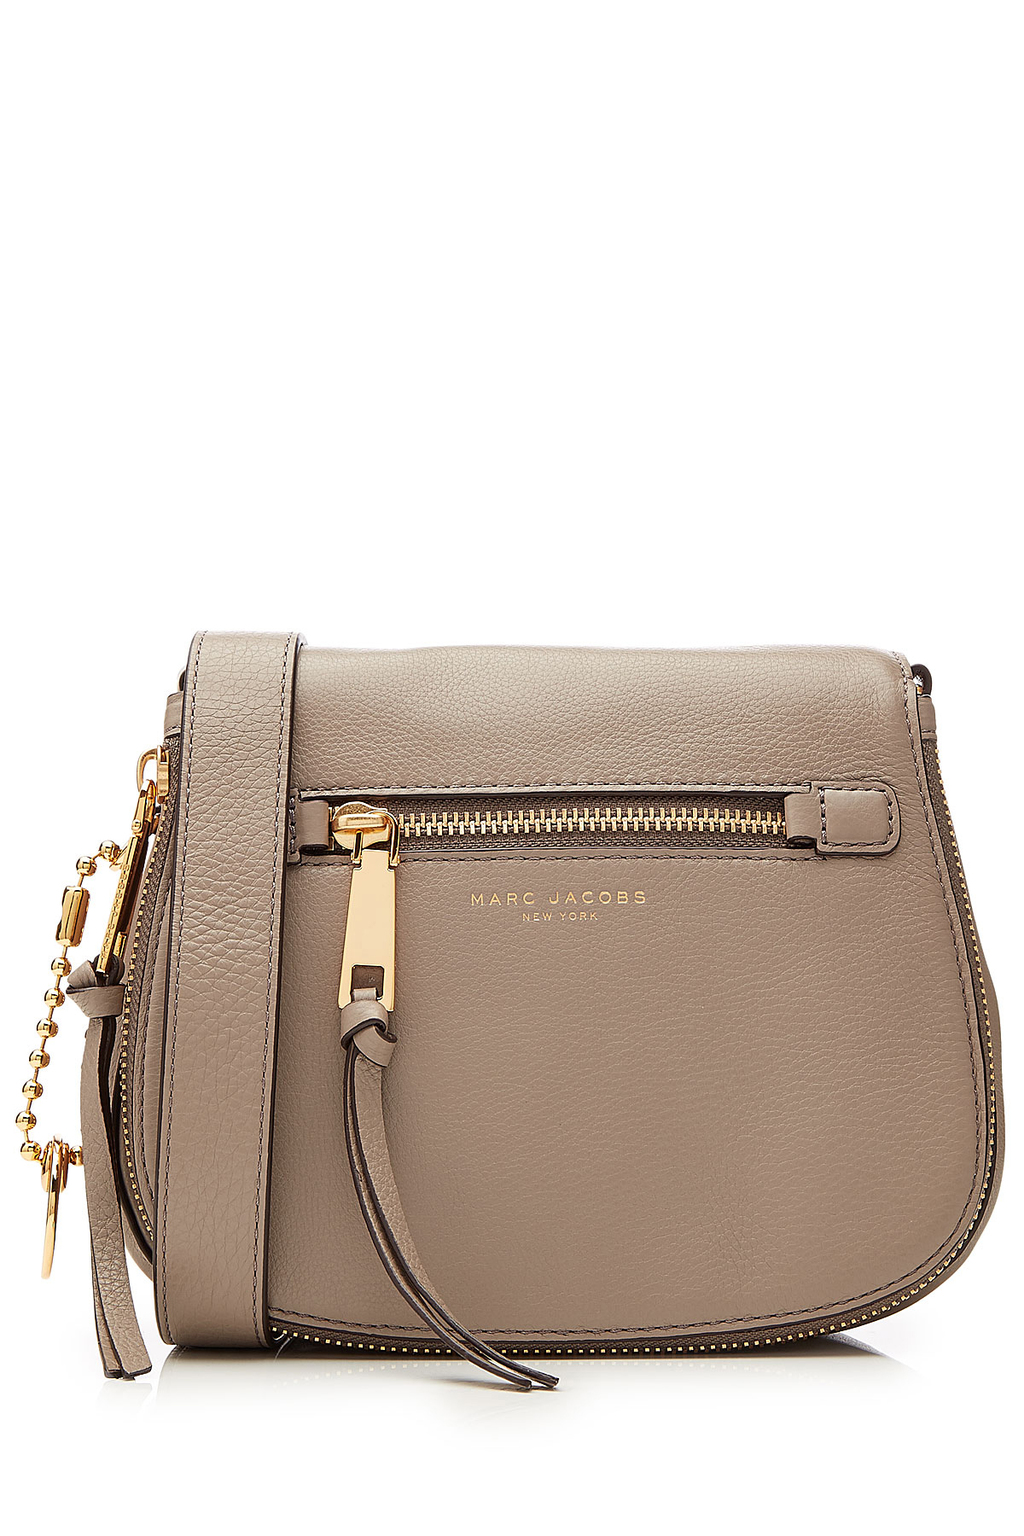 Recruit Small Leather Saddle Bag Grey - predominant colour: taupe; occasions: casual, creative work; type of pattern: standard; style: saddle; length: across body/long; size: small; material: leather; pattern: plain; finish: plain; season: s/s 2016; wardrobe: basic